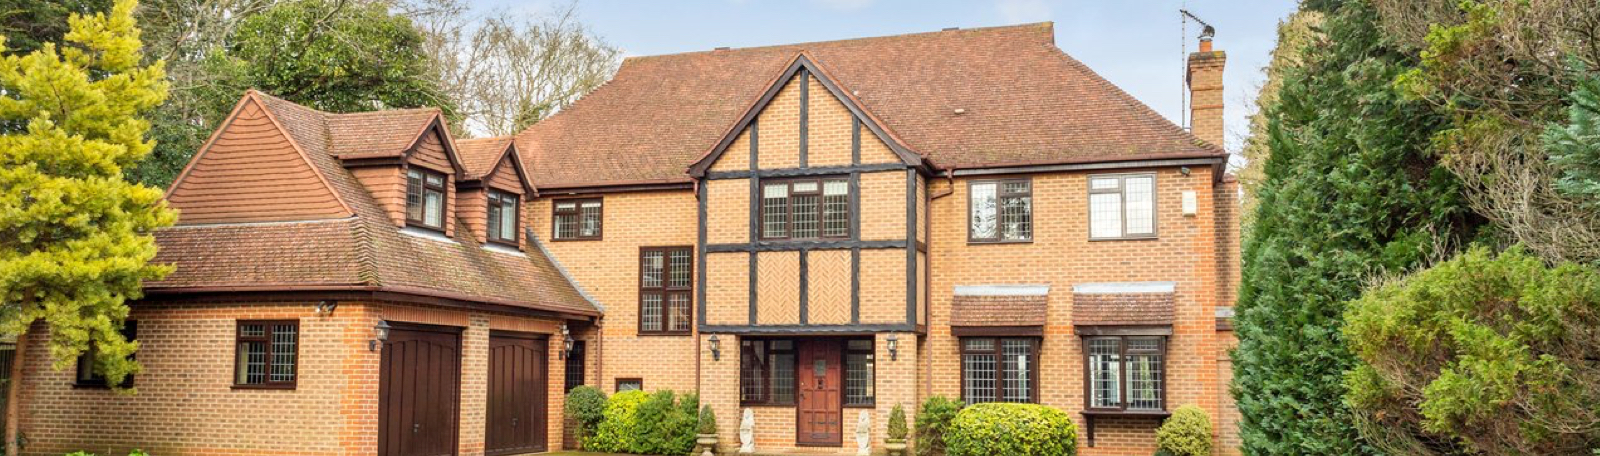 5 Bedroom House To Rent In The Barton Cobham Kt11 Grosvenor Billinghurst Surrey Estate Agents